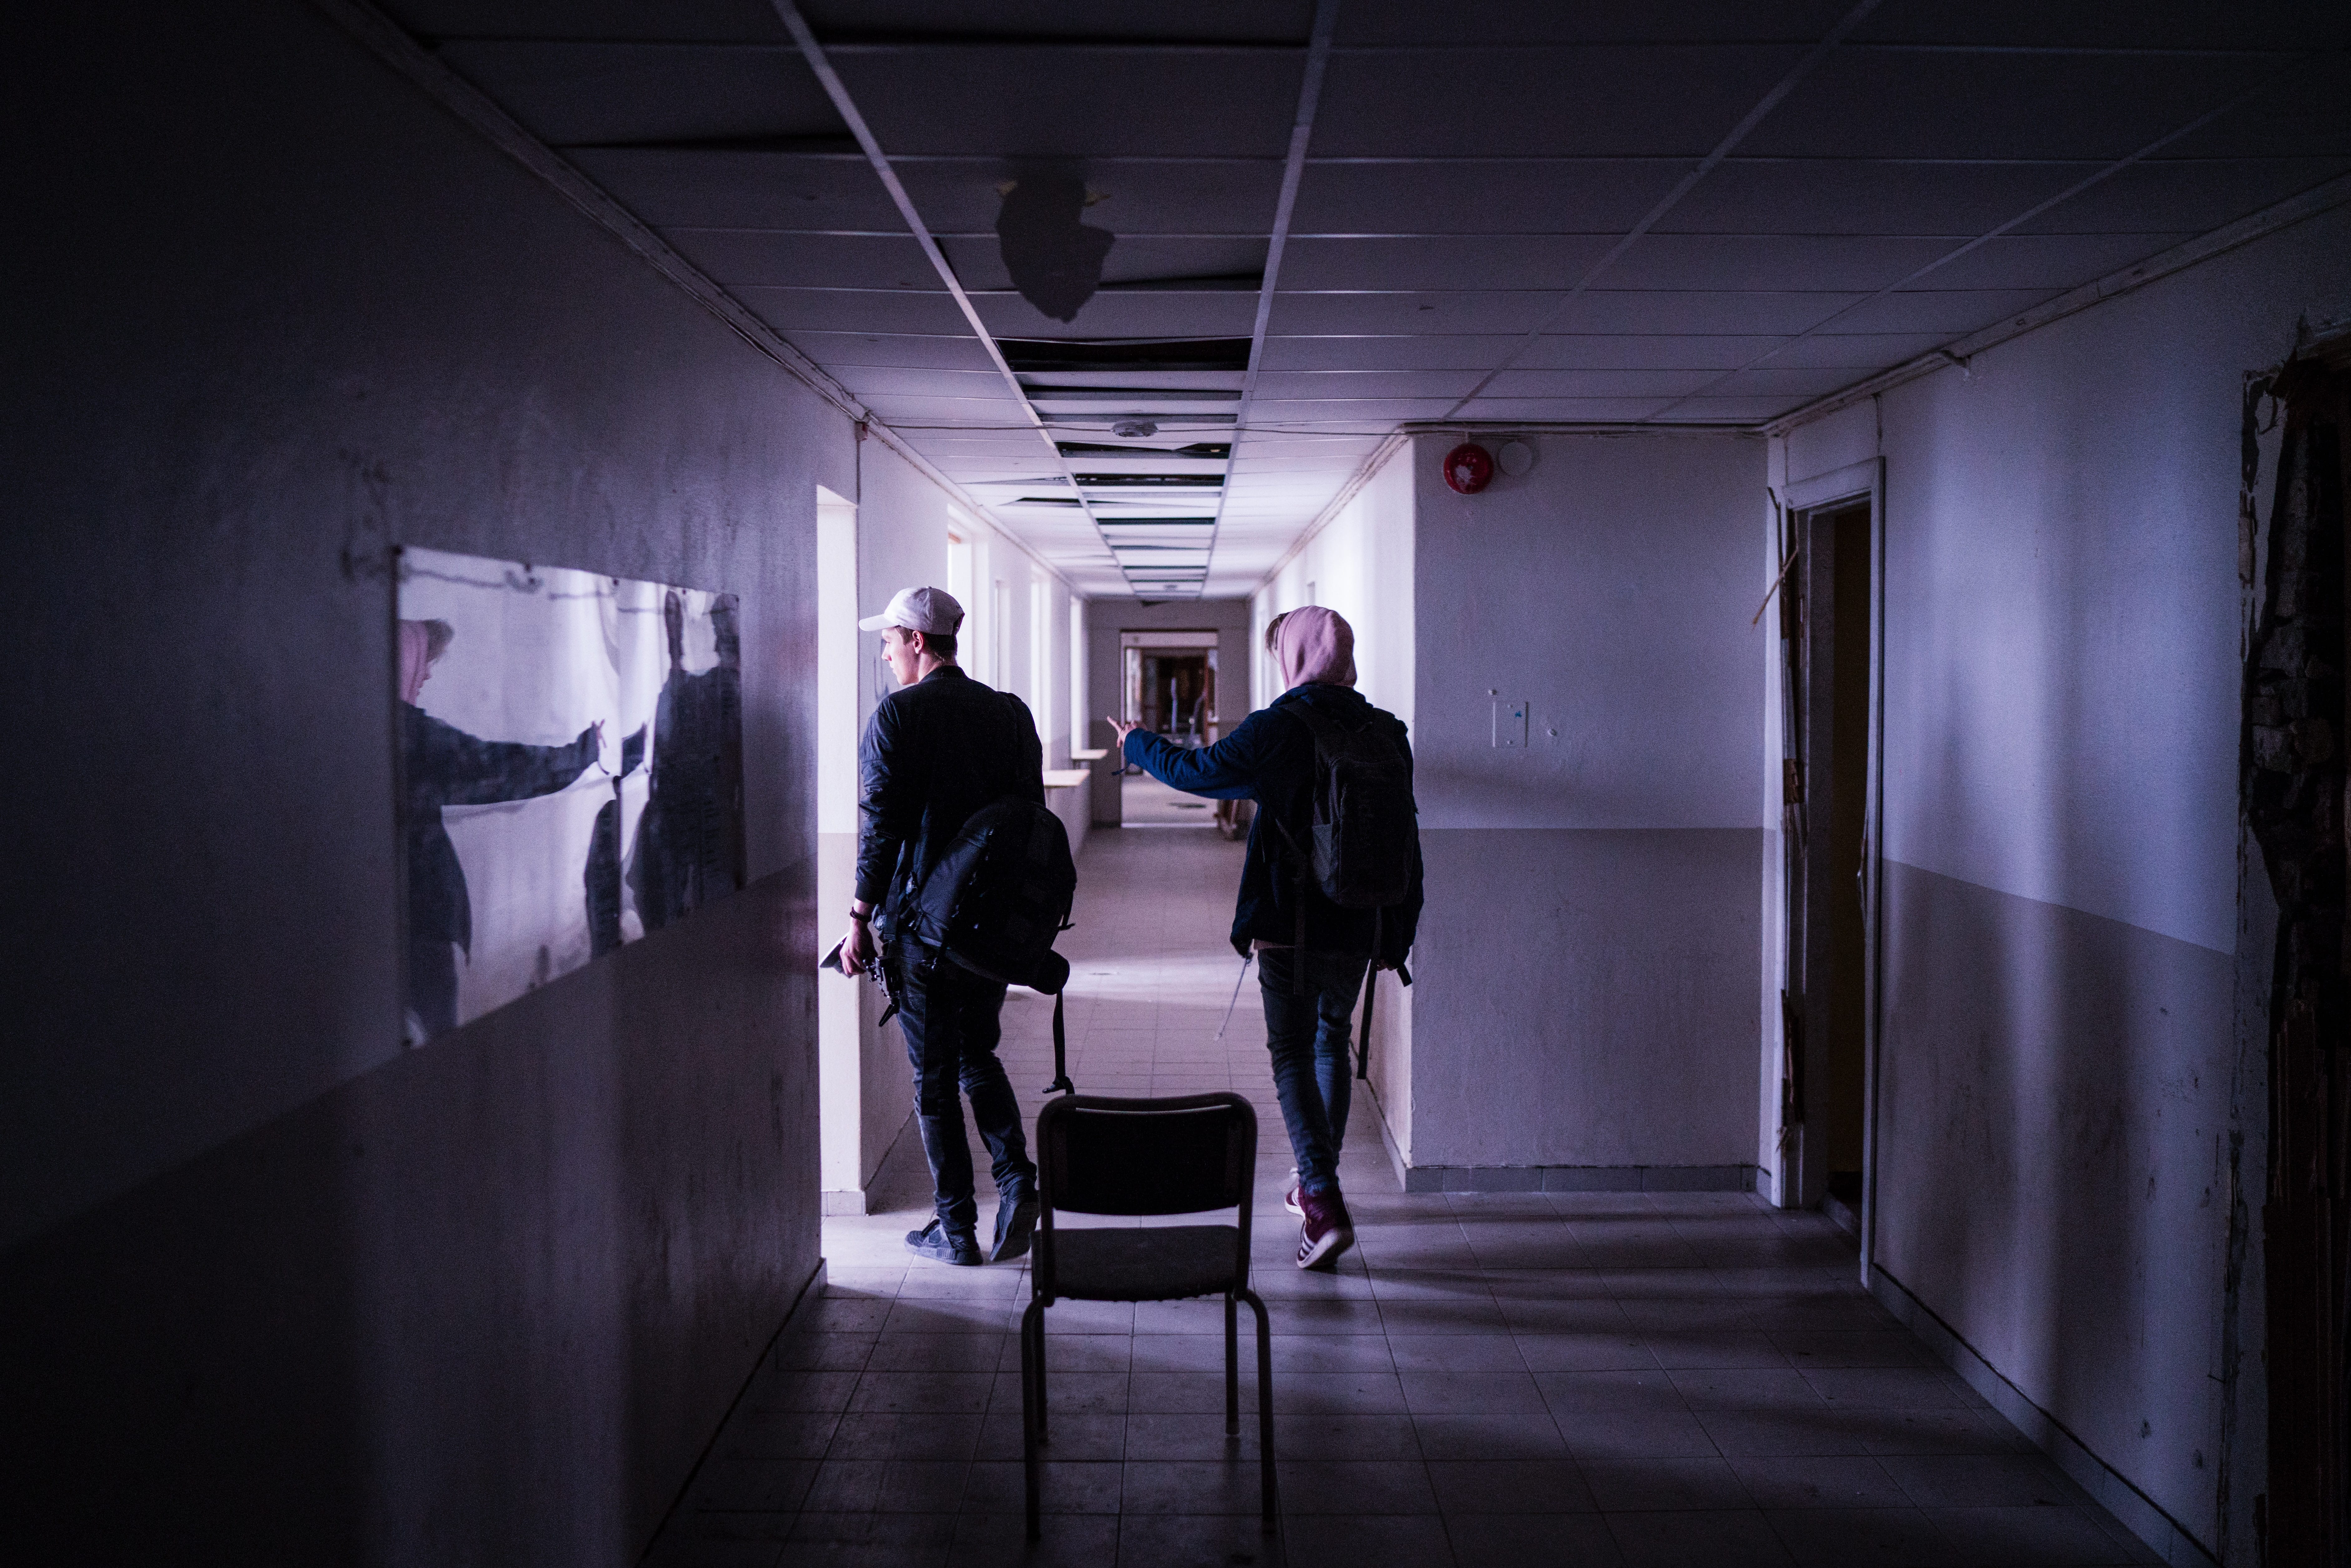 Two men walking down a hallway; image by Daniel Tafjord, via unsplash.com.